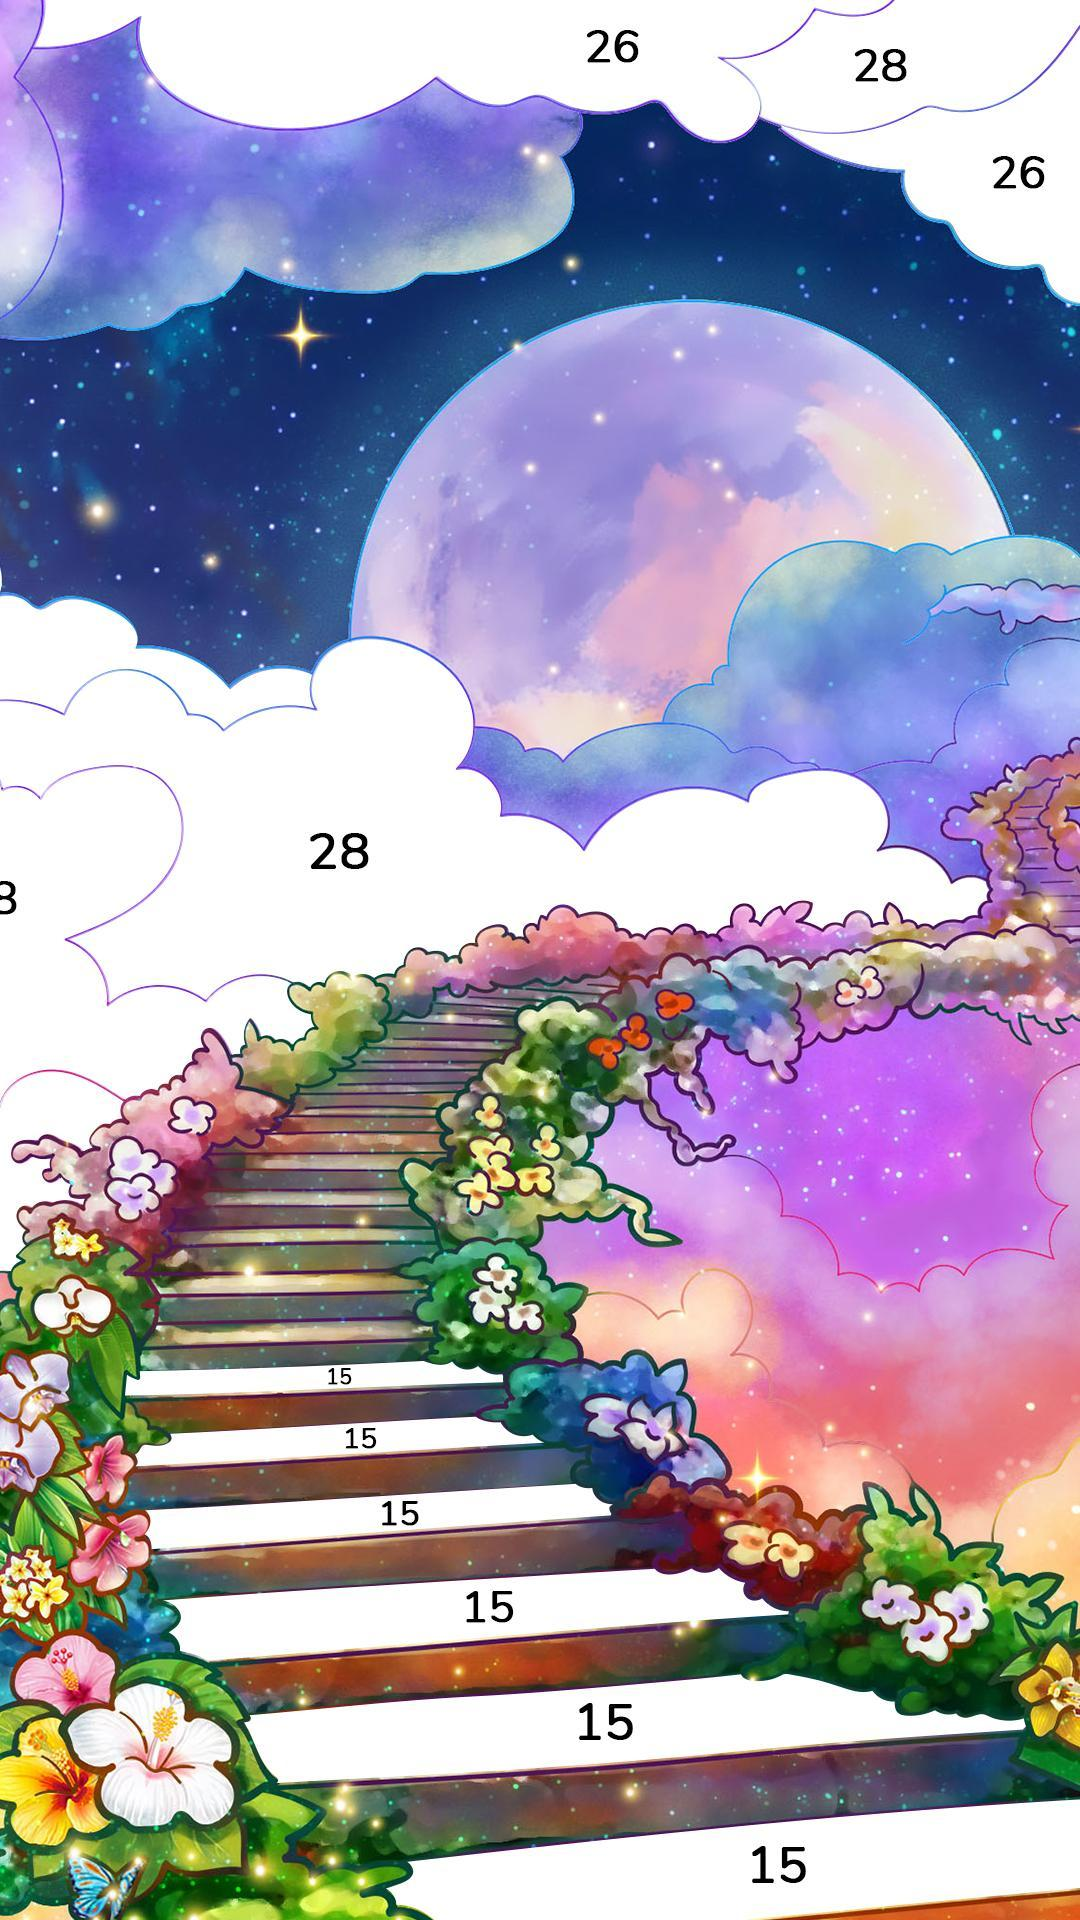 Bible Coloring Paint by Number, Free Bible Games 2.1.14 Screenshot 3